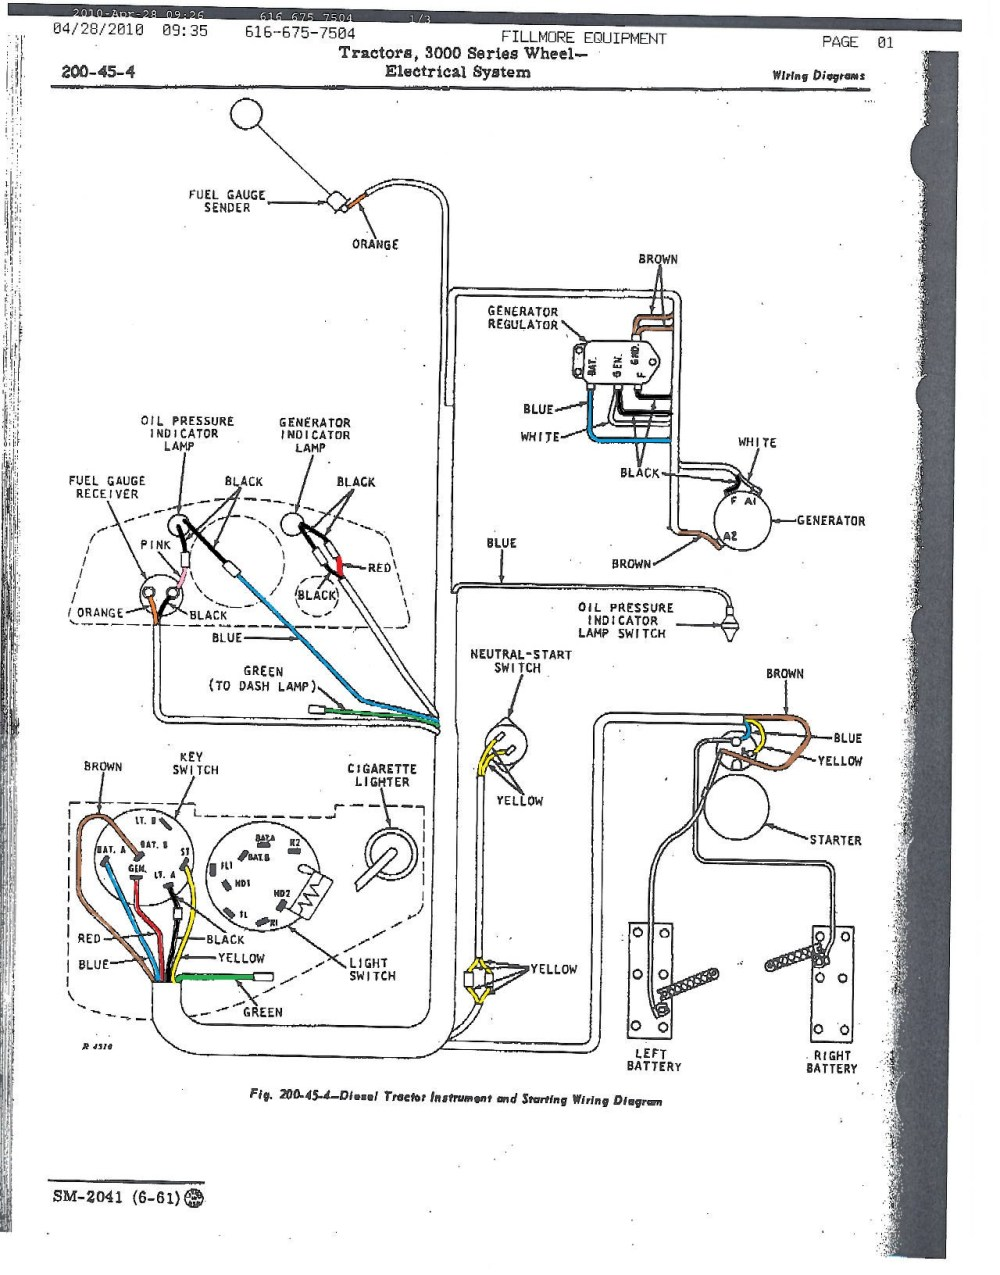 medium resolution of john deere tractor wiring diagrams wiring diagram origin john deere 355d wiring diagram 3010 214 john